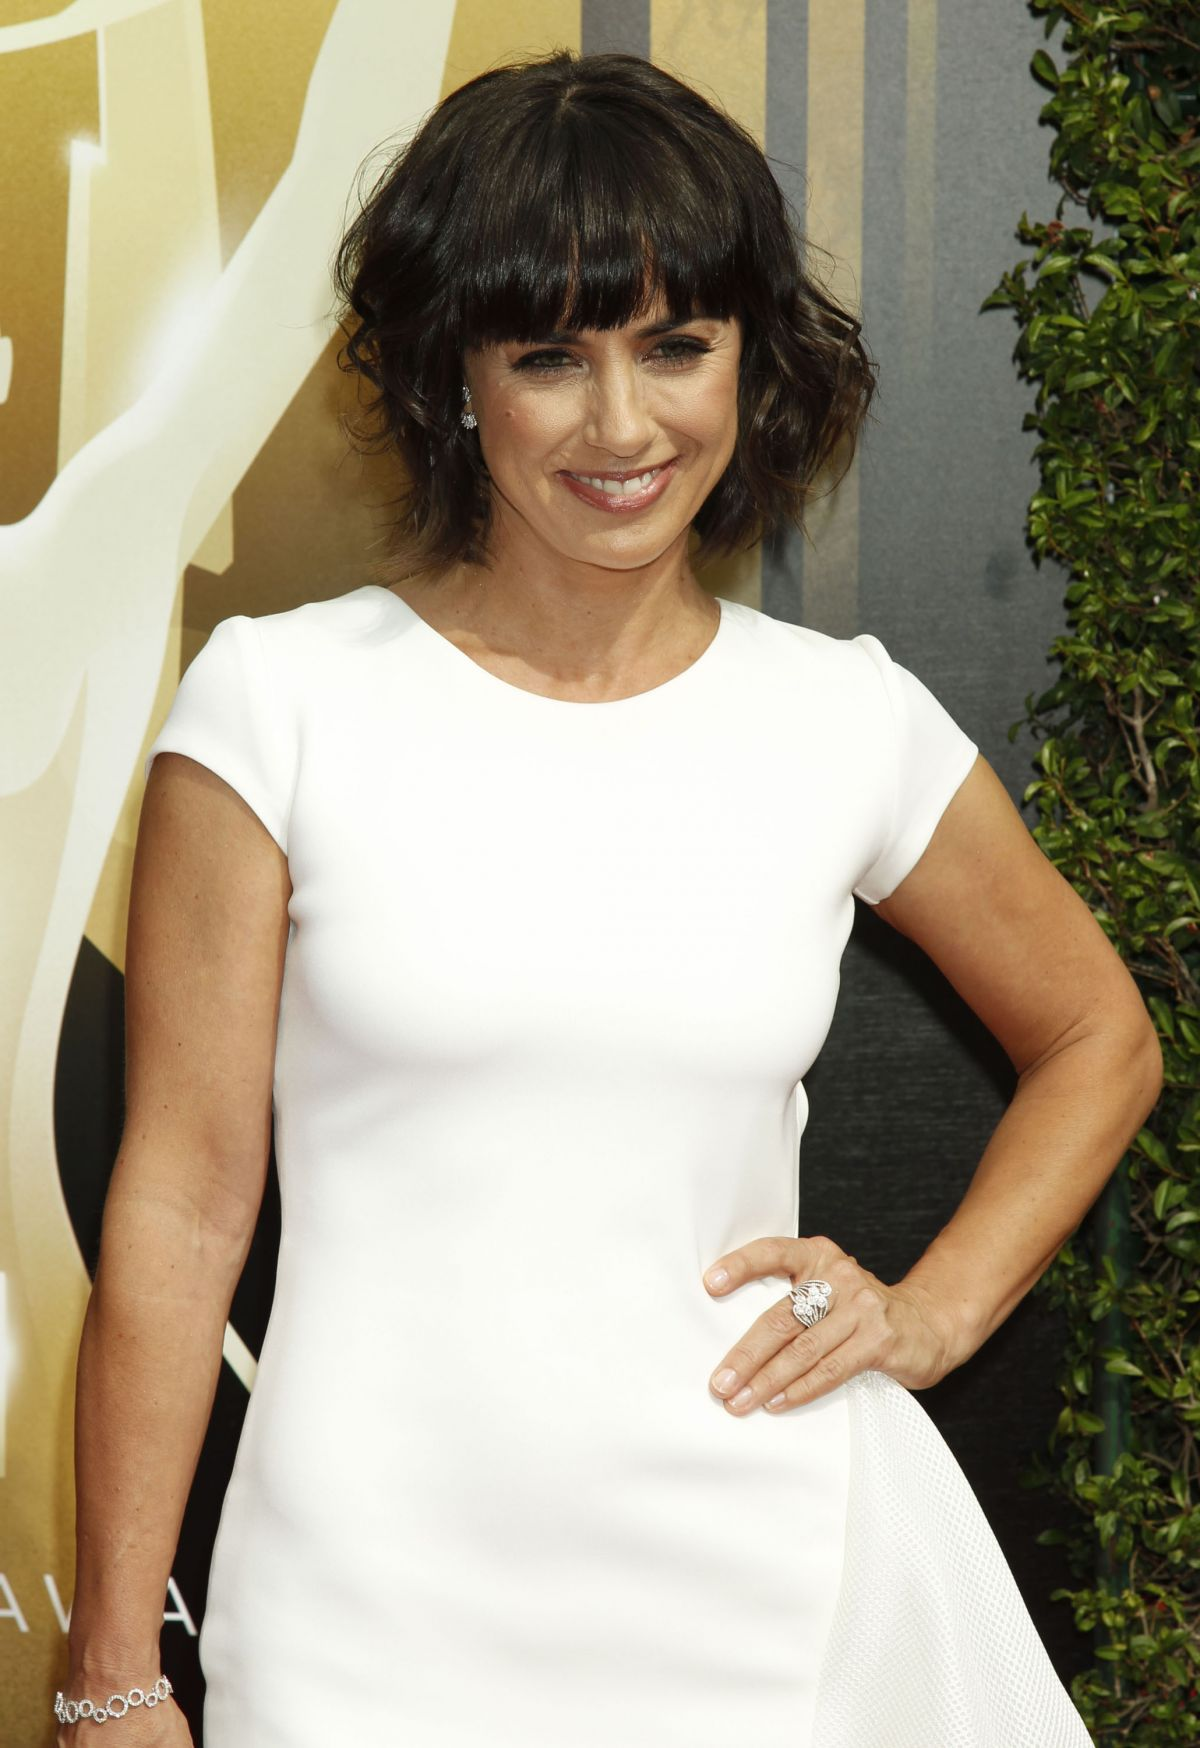 CONSTANCE ZIMMER at 2015 Creative Arts Emmy Awards in Los Angeles 09/12/2015